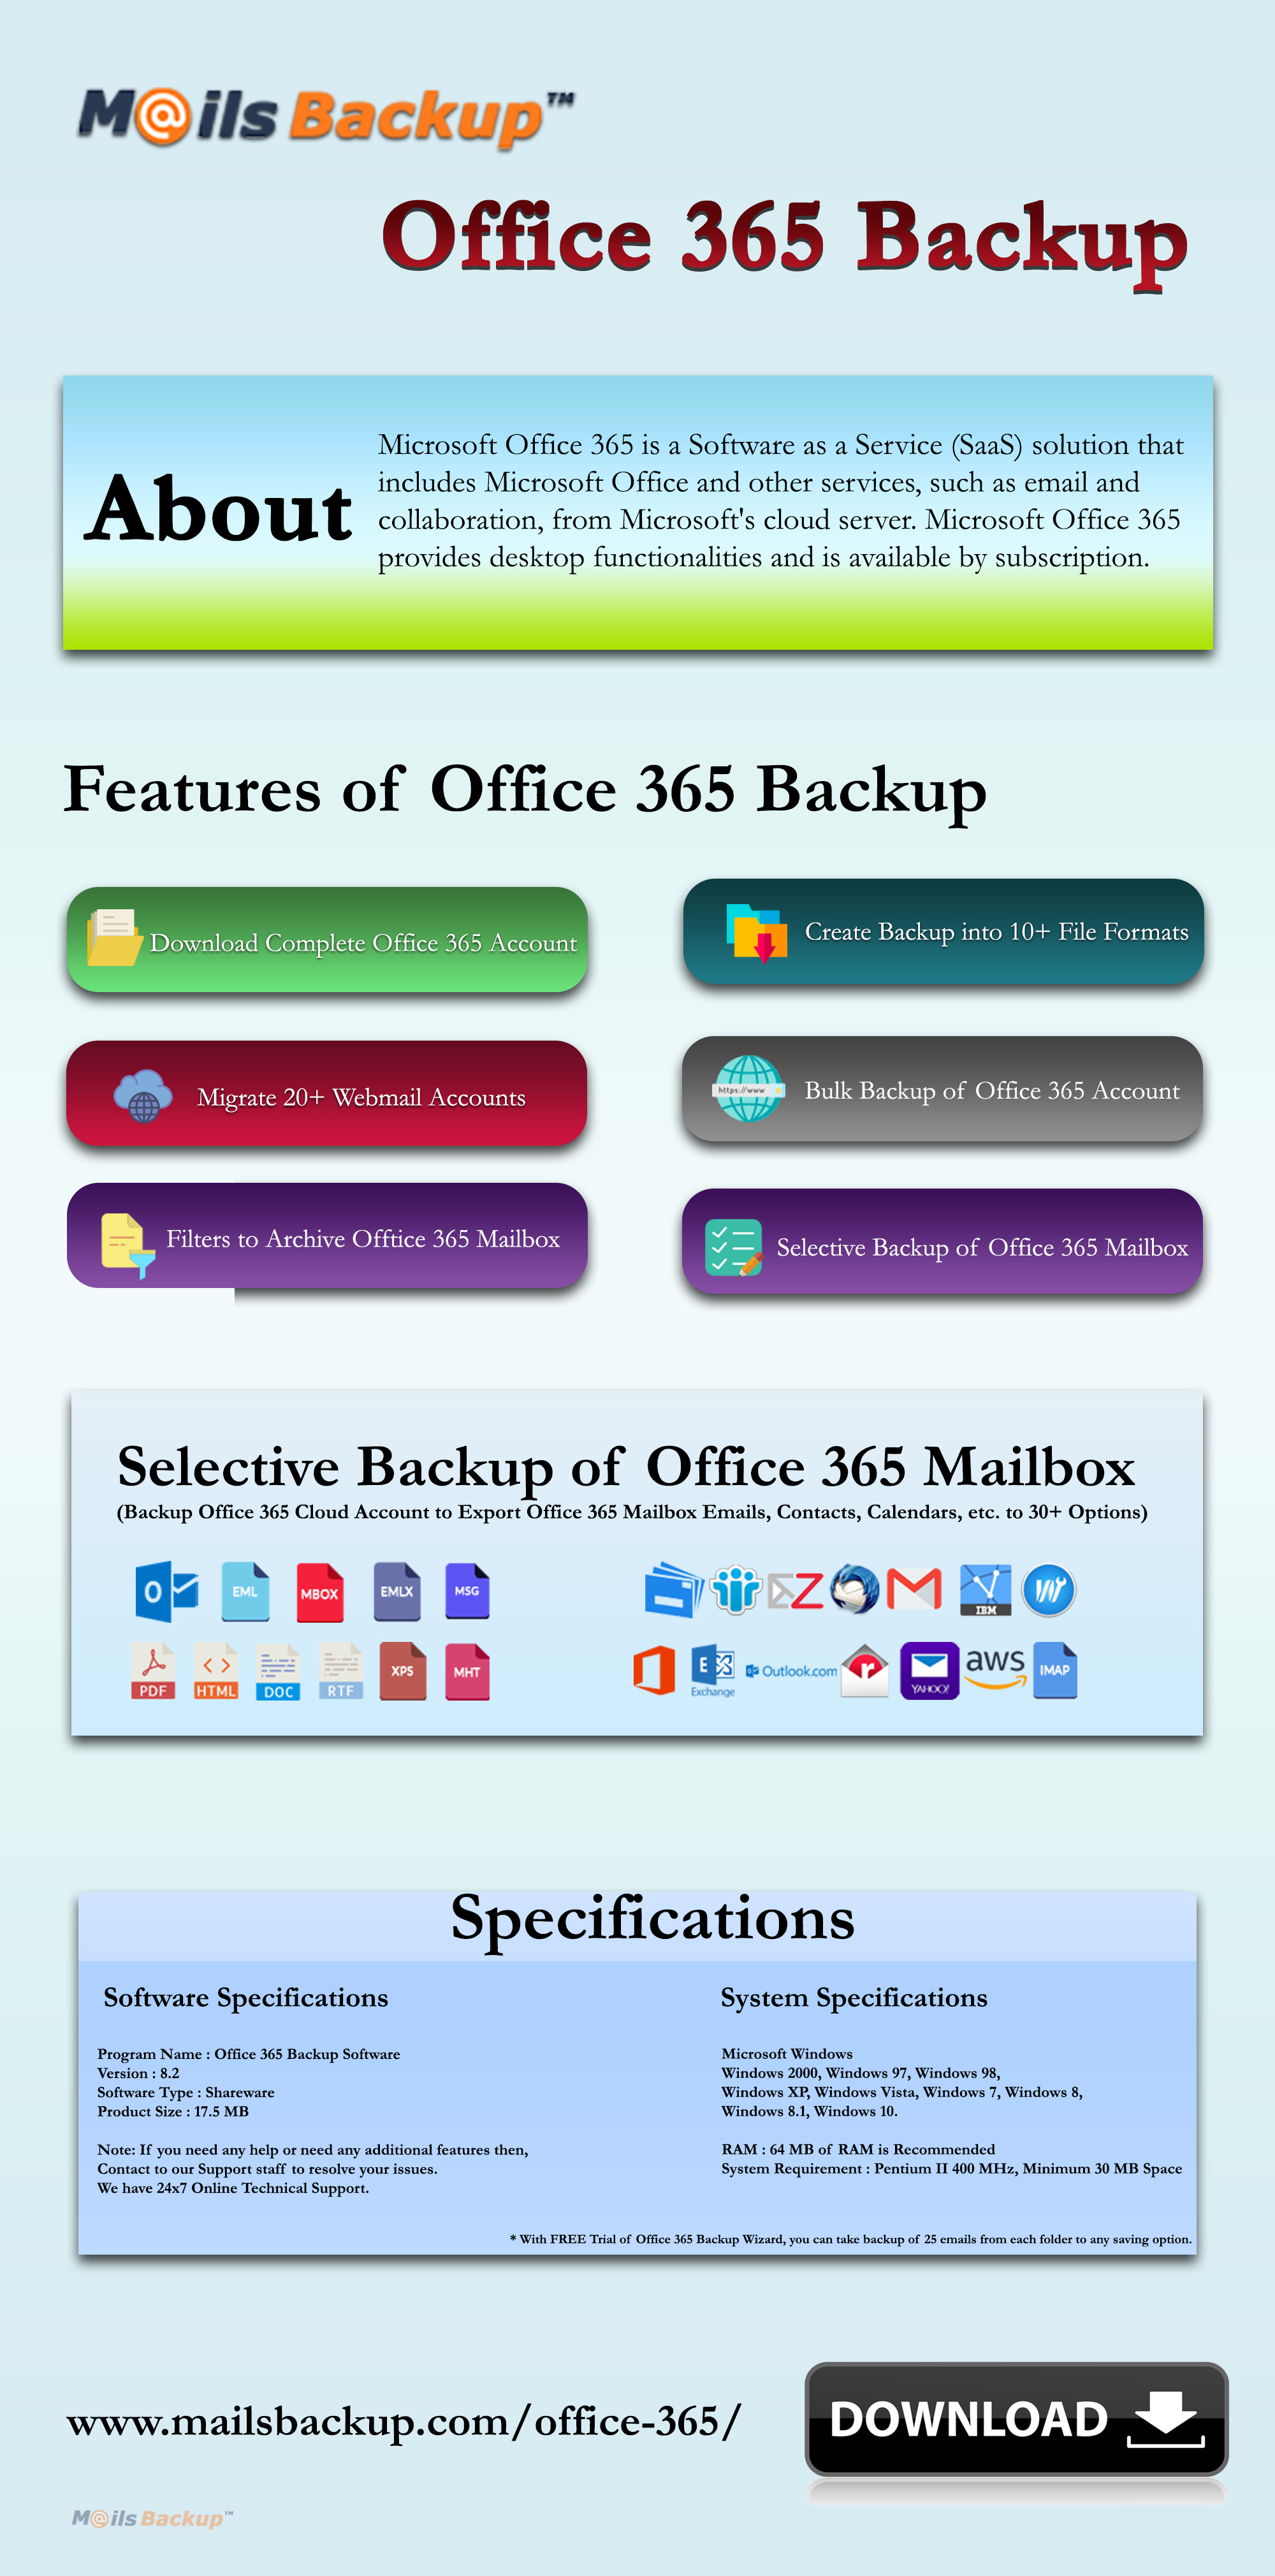 RE: Which is best software to backup Backup Office 365 email ?